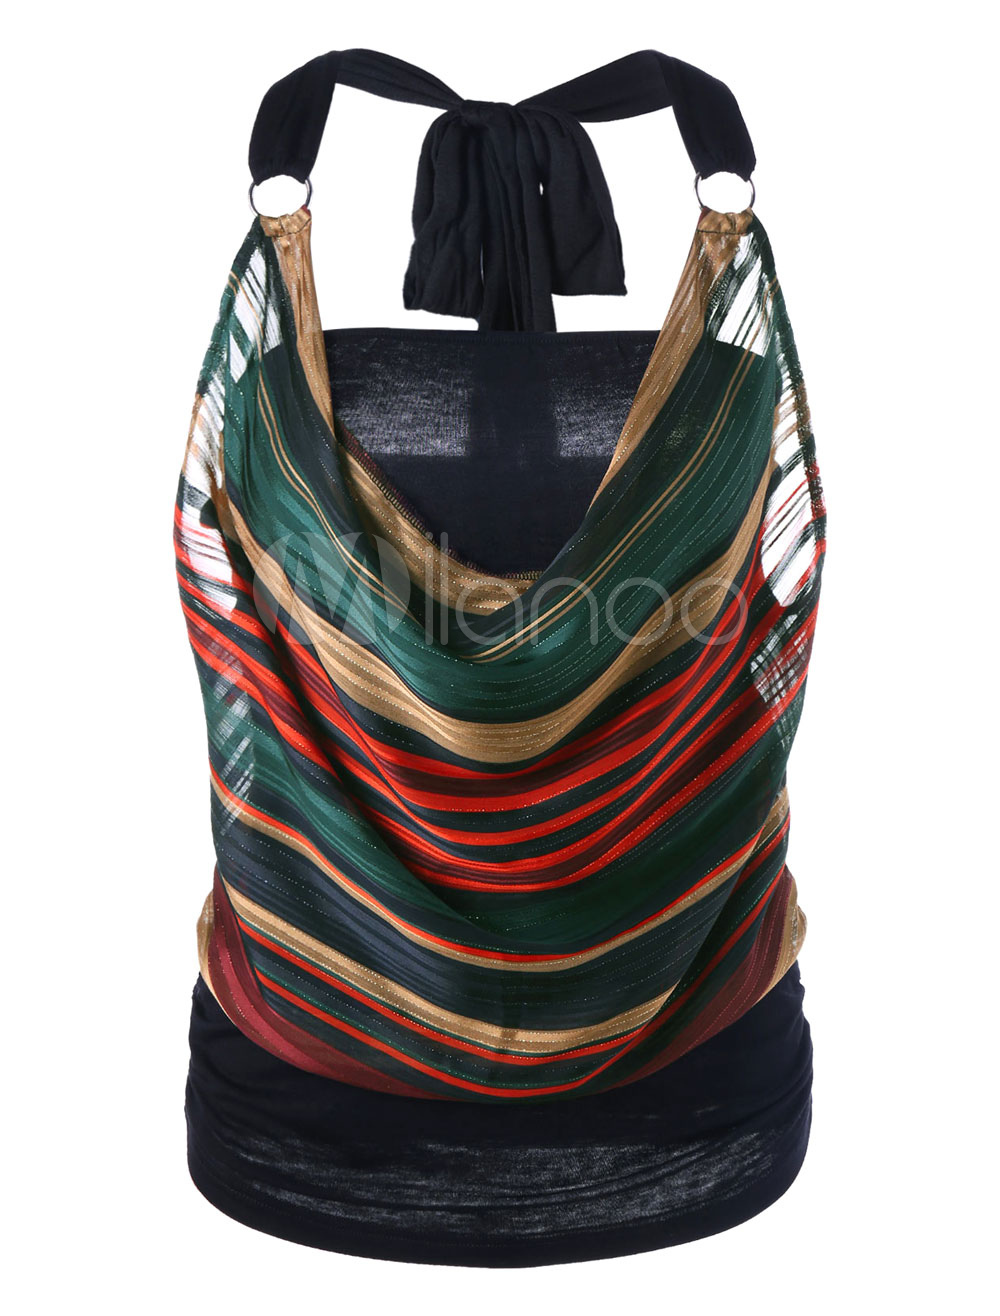 Black Cami Top Halter Sleeveless Chiffon Striped Layered Hoop Women's Casual Tops Cheap clothes, free shipping worldwide